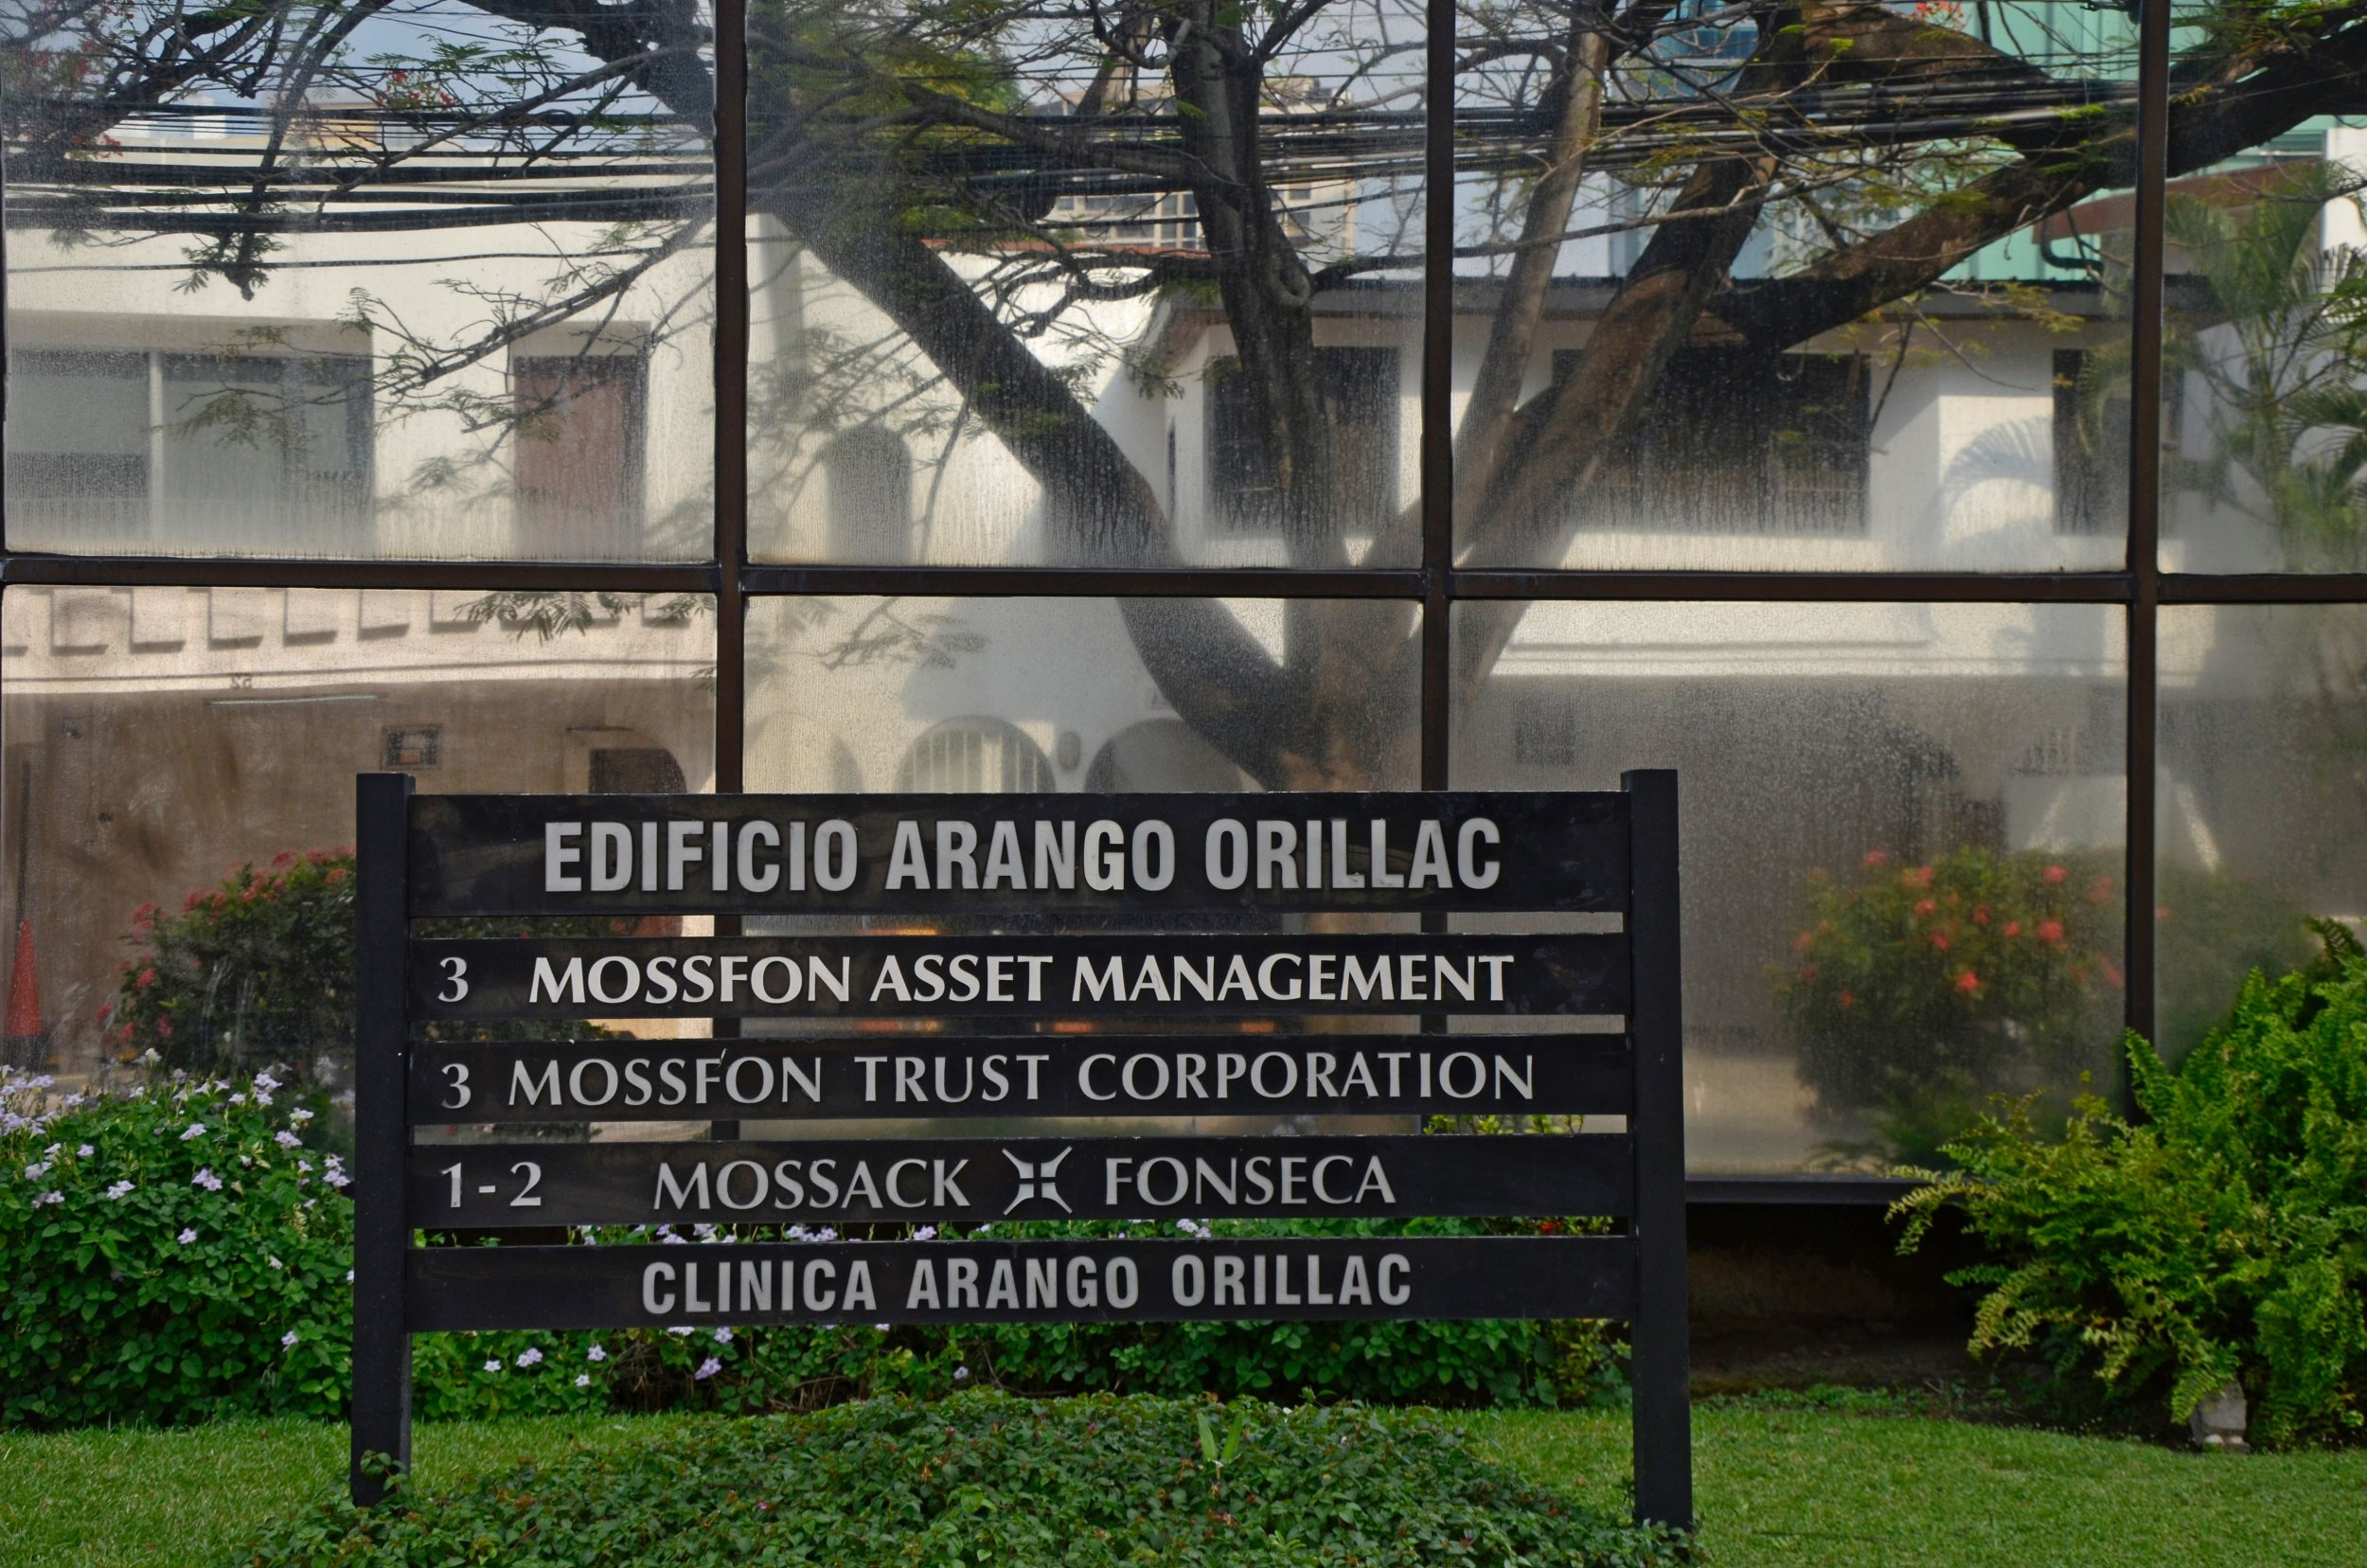 Panama Papers: Who's Implicated from Africa?